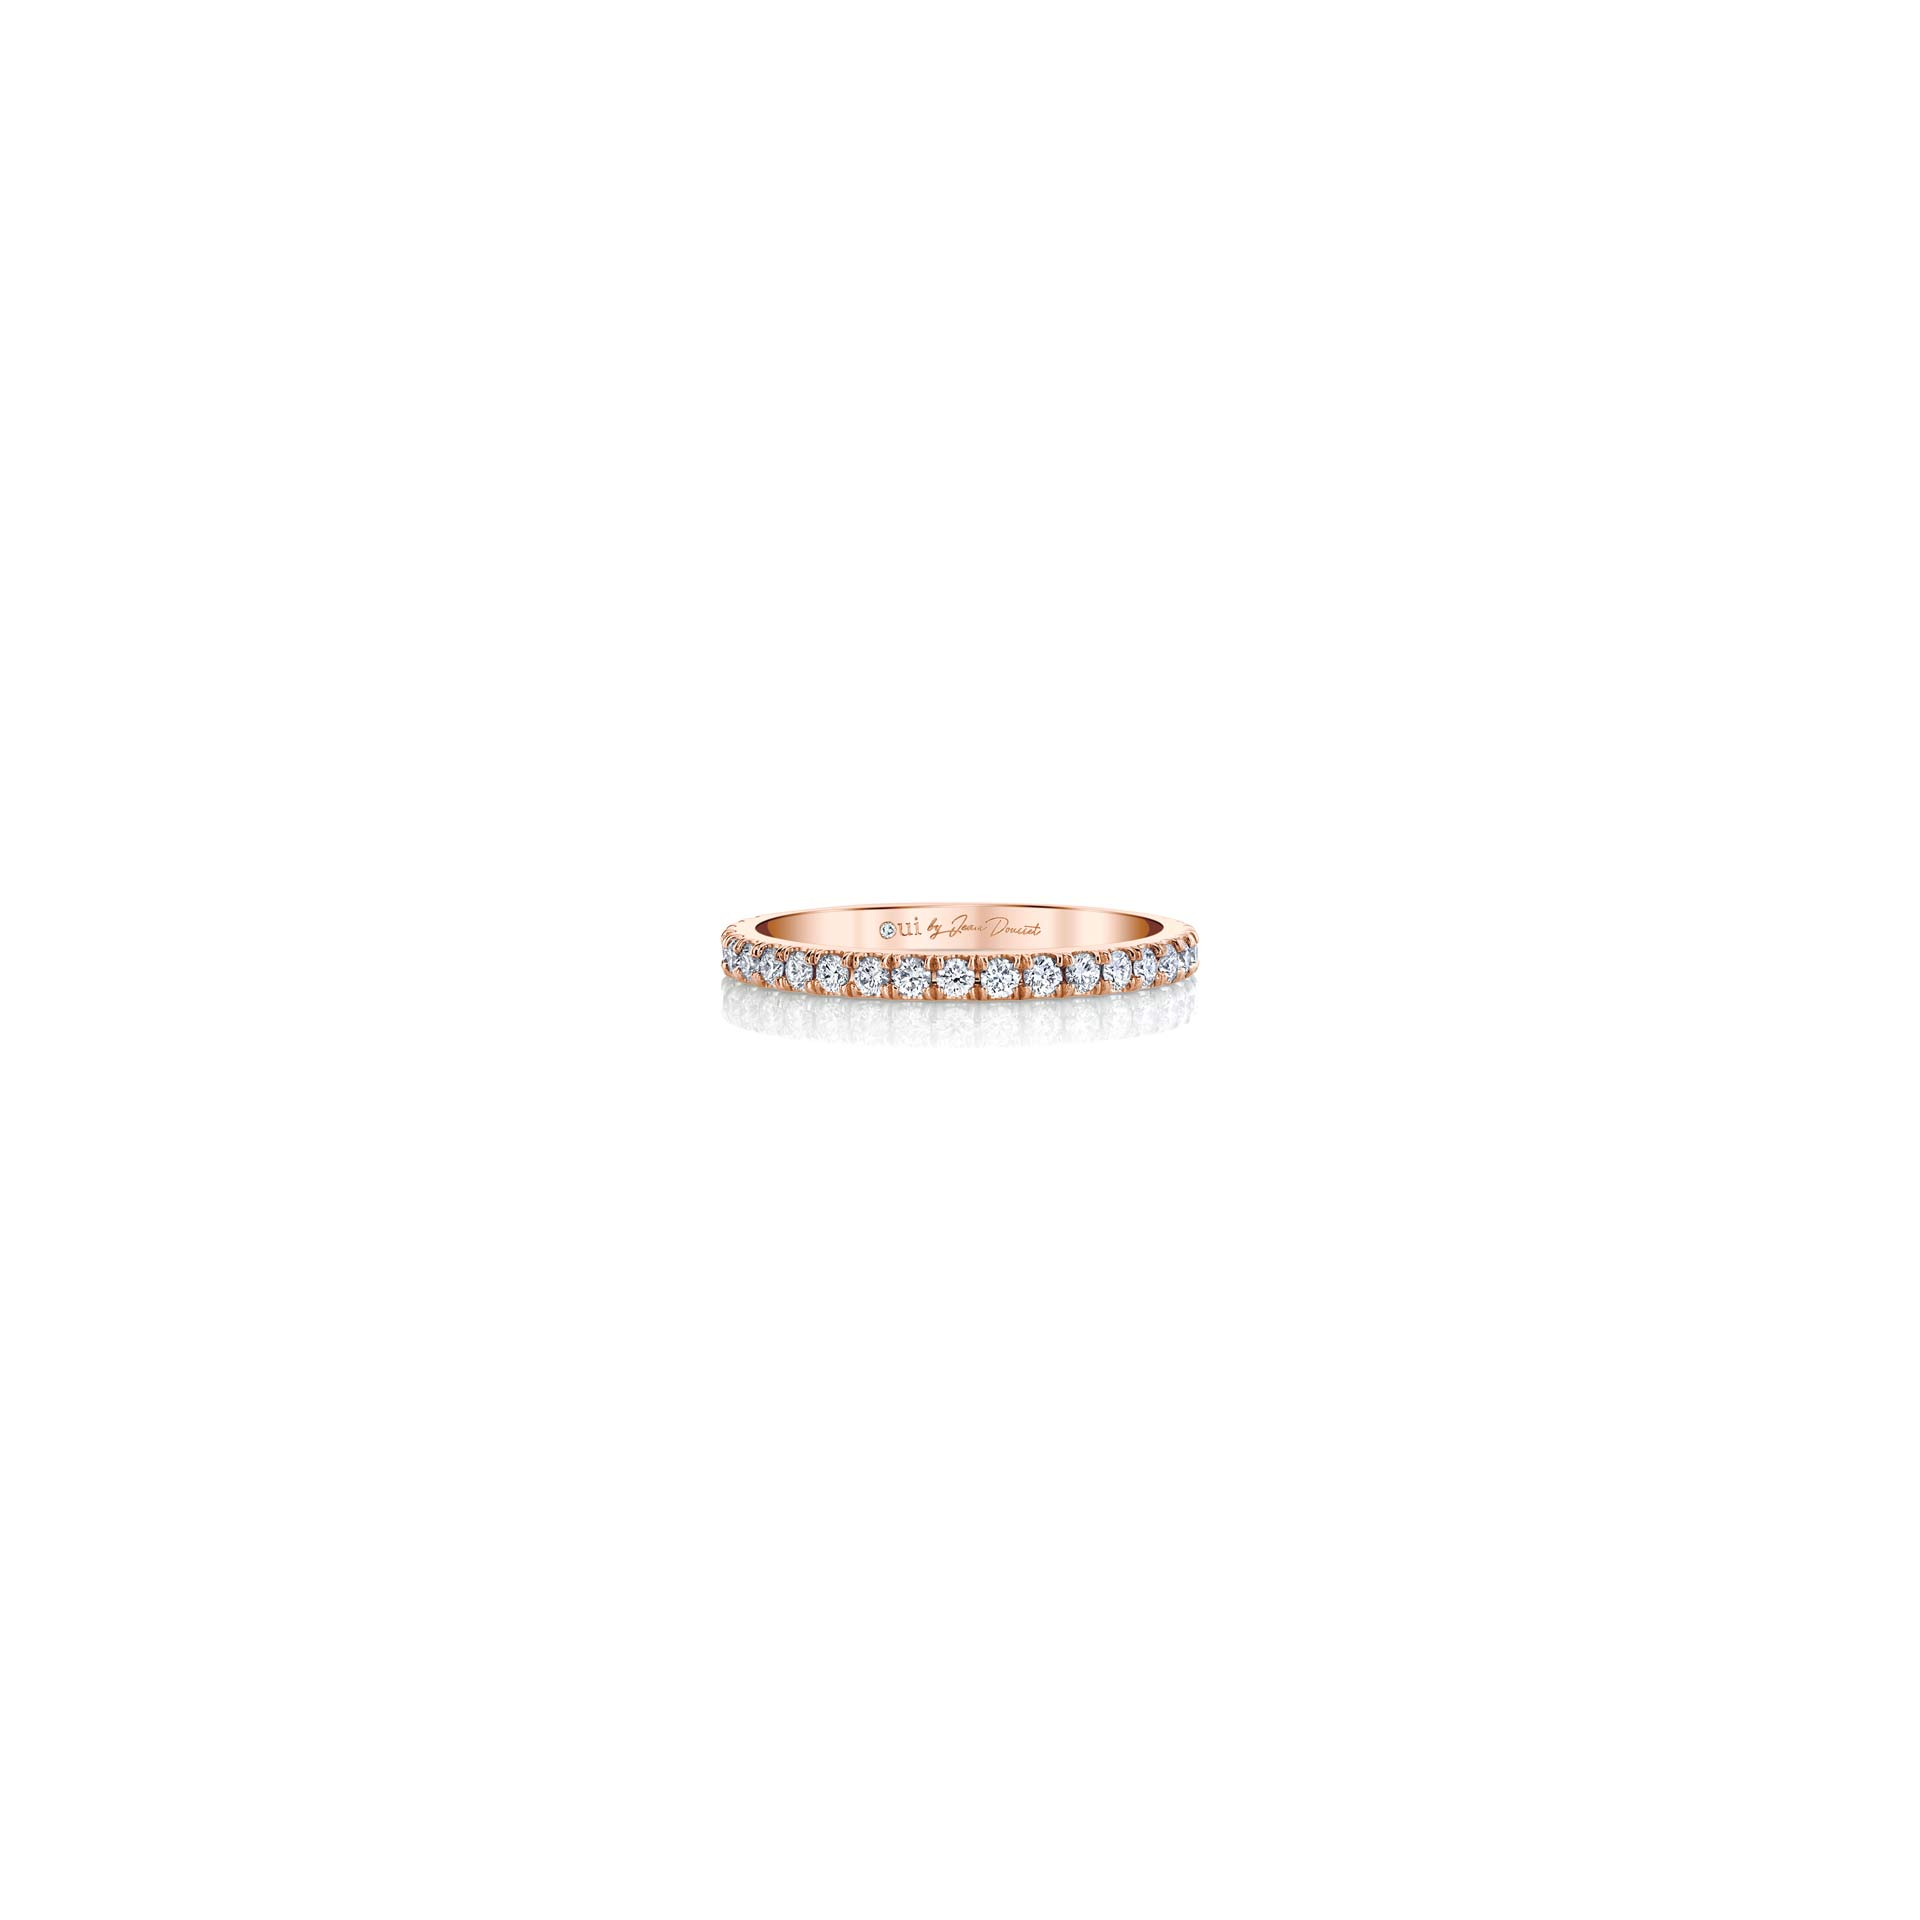 Eloise Women's Wedding Band with diamond pavé in 18k Rose Gold Front View by Oui by Jean Dousset